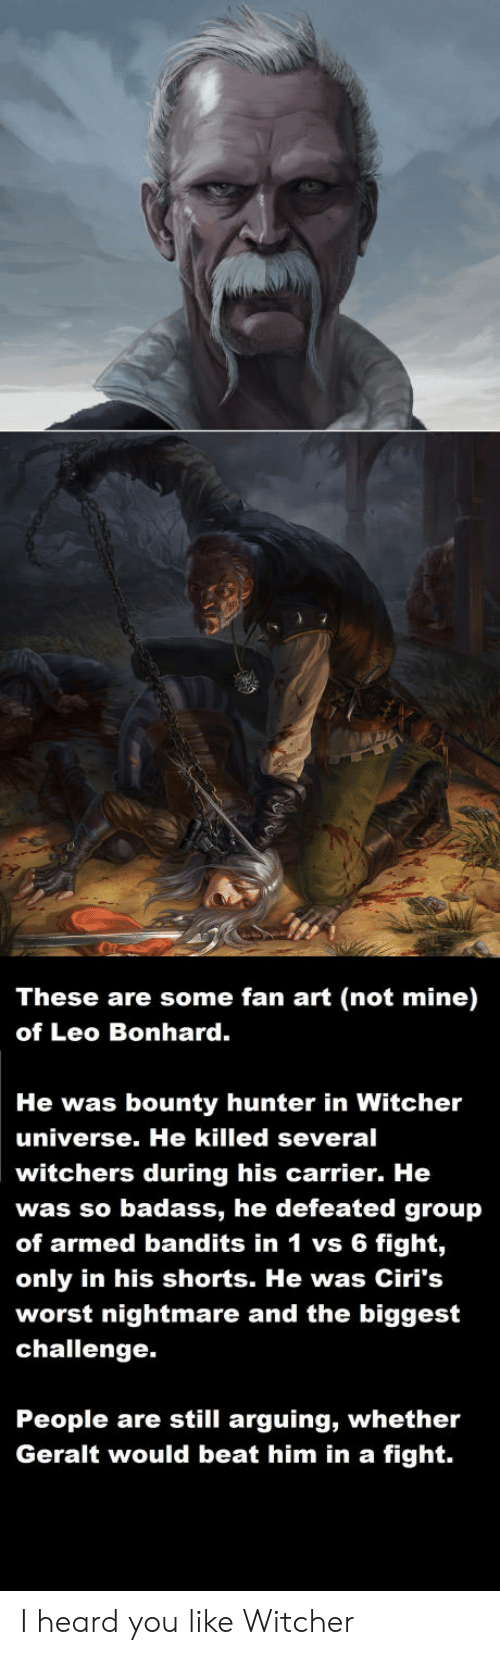 Leos: These are some fan art (not mine)  of Leo Bonhard.  He was bounty hunter in Witcher  universe. He killed several  witchers during his carrier. He  was so badass, he defeated group  of armed bandits in 1 vs 6 fight,  only in his shorts. He was Ciri's  worst nightmare and the biggest  challenge.  People are still arguing, whether  Geralt would beat him in a fight. I heard you like Witcher